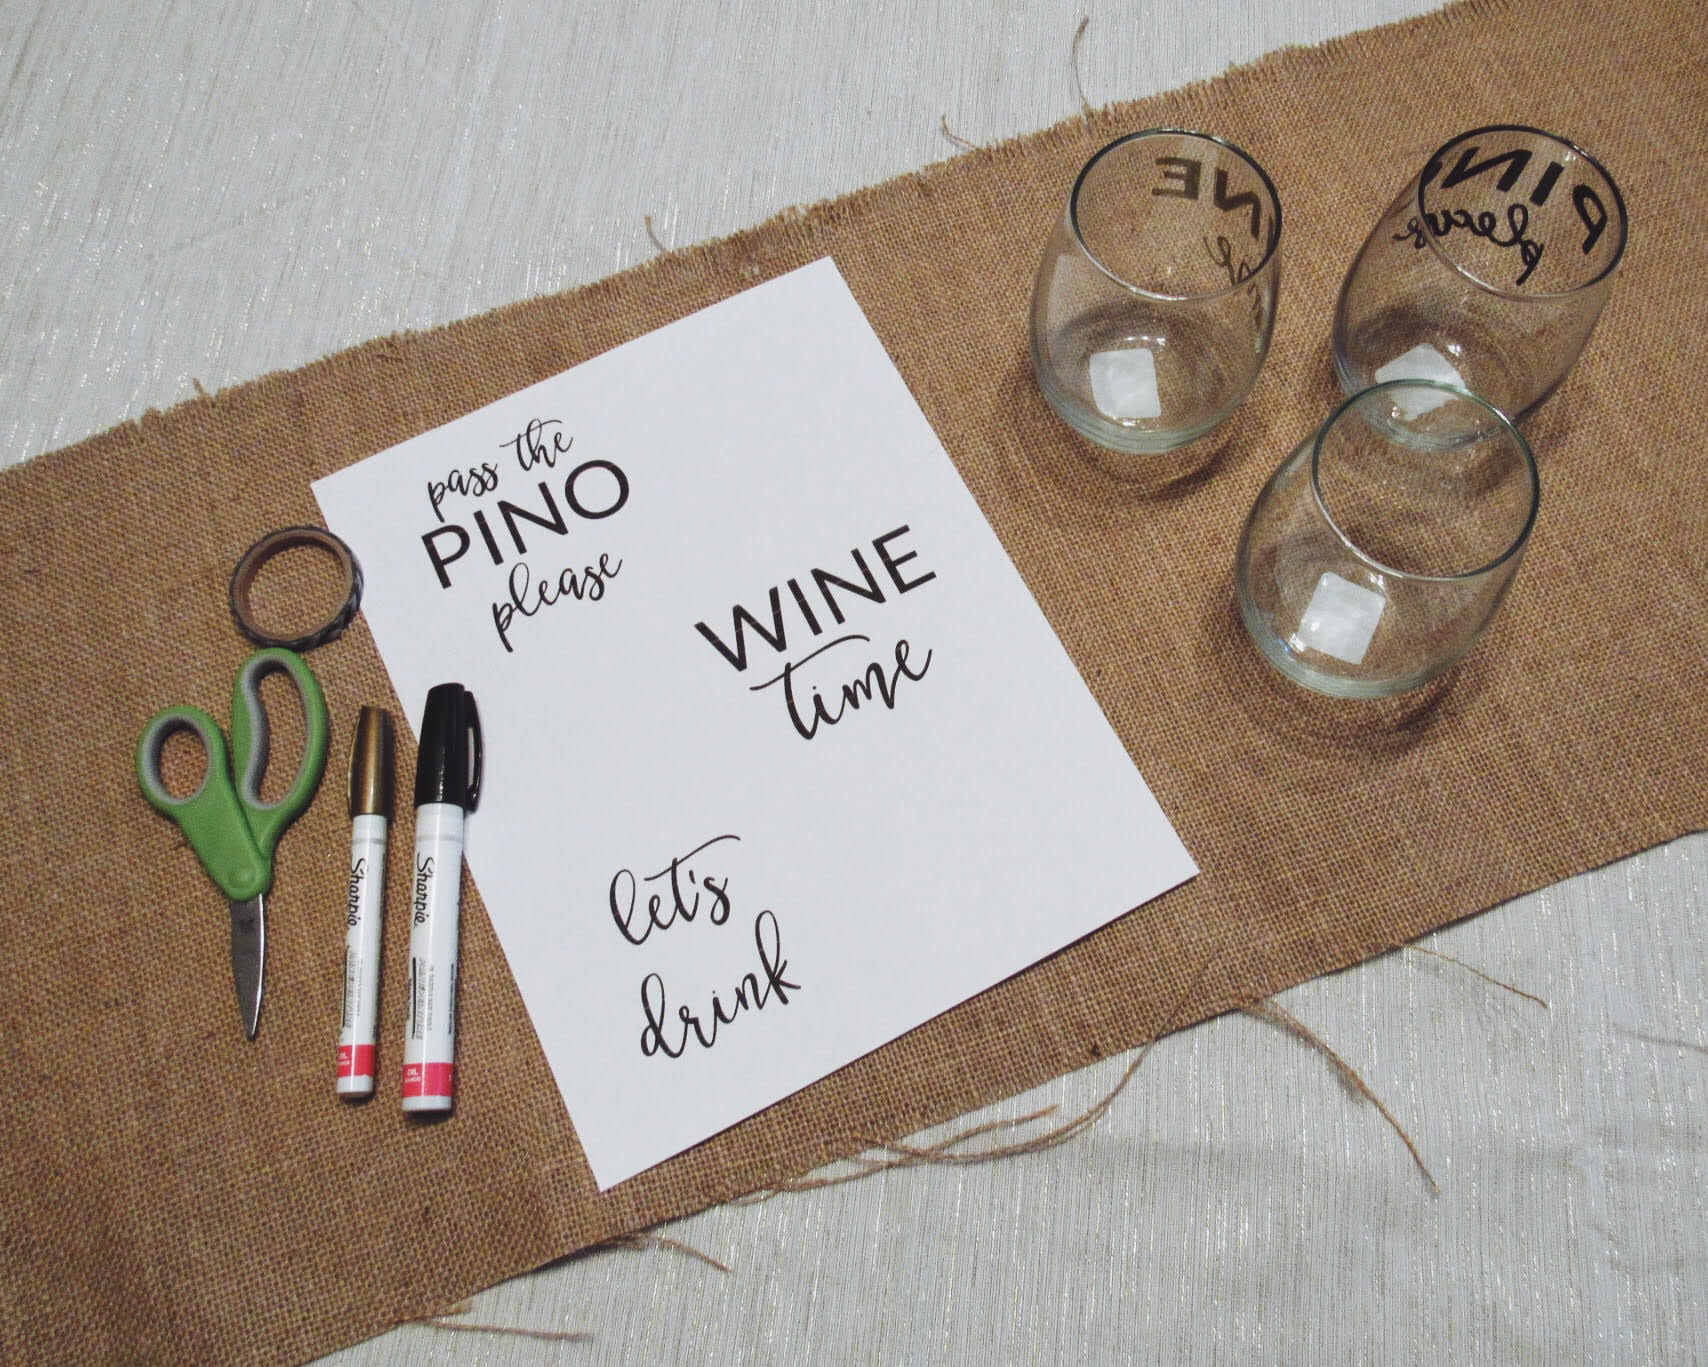 Diy Gift Wine Glasses Keeping The Creativity